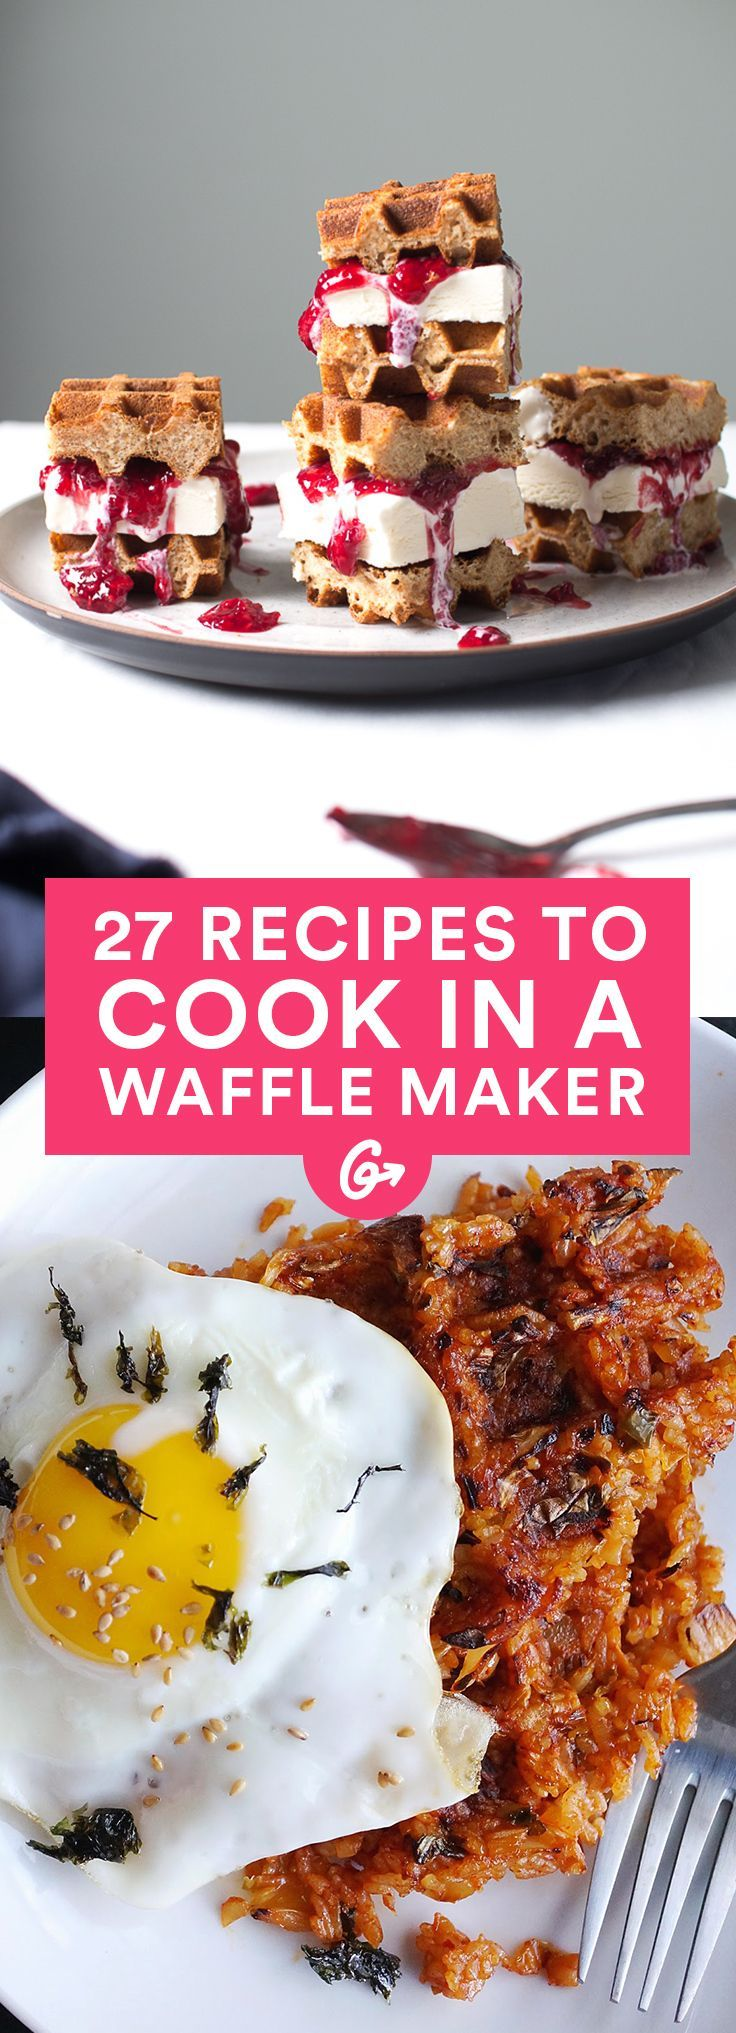 A waffle maker is no one-hit wonder. #healthy #waffles #recipes http://greatist.com/eat/waffle-maker-recipes